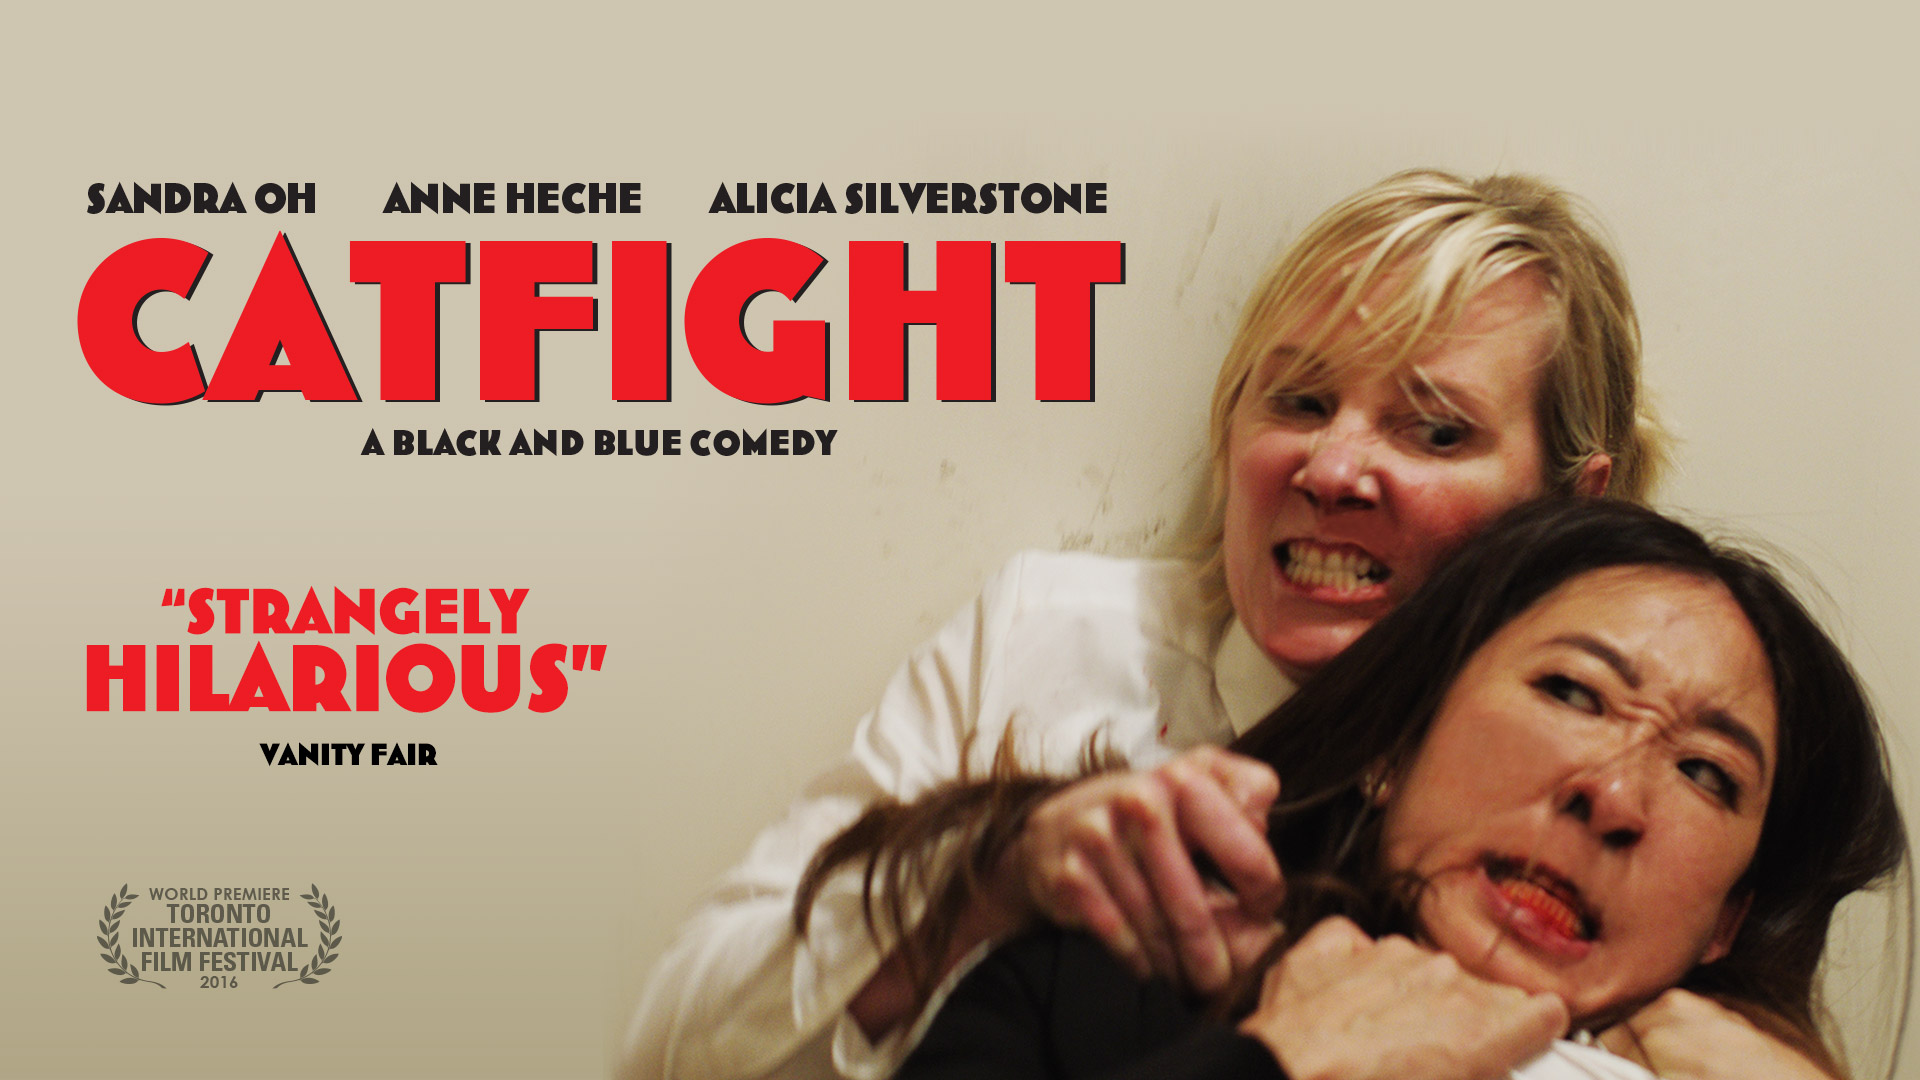 catfight movie sandra oh anne heche alicia silverstone netflix banner